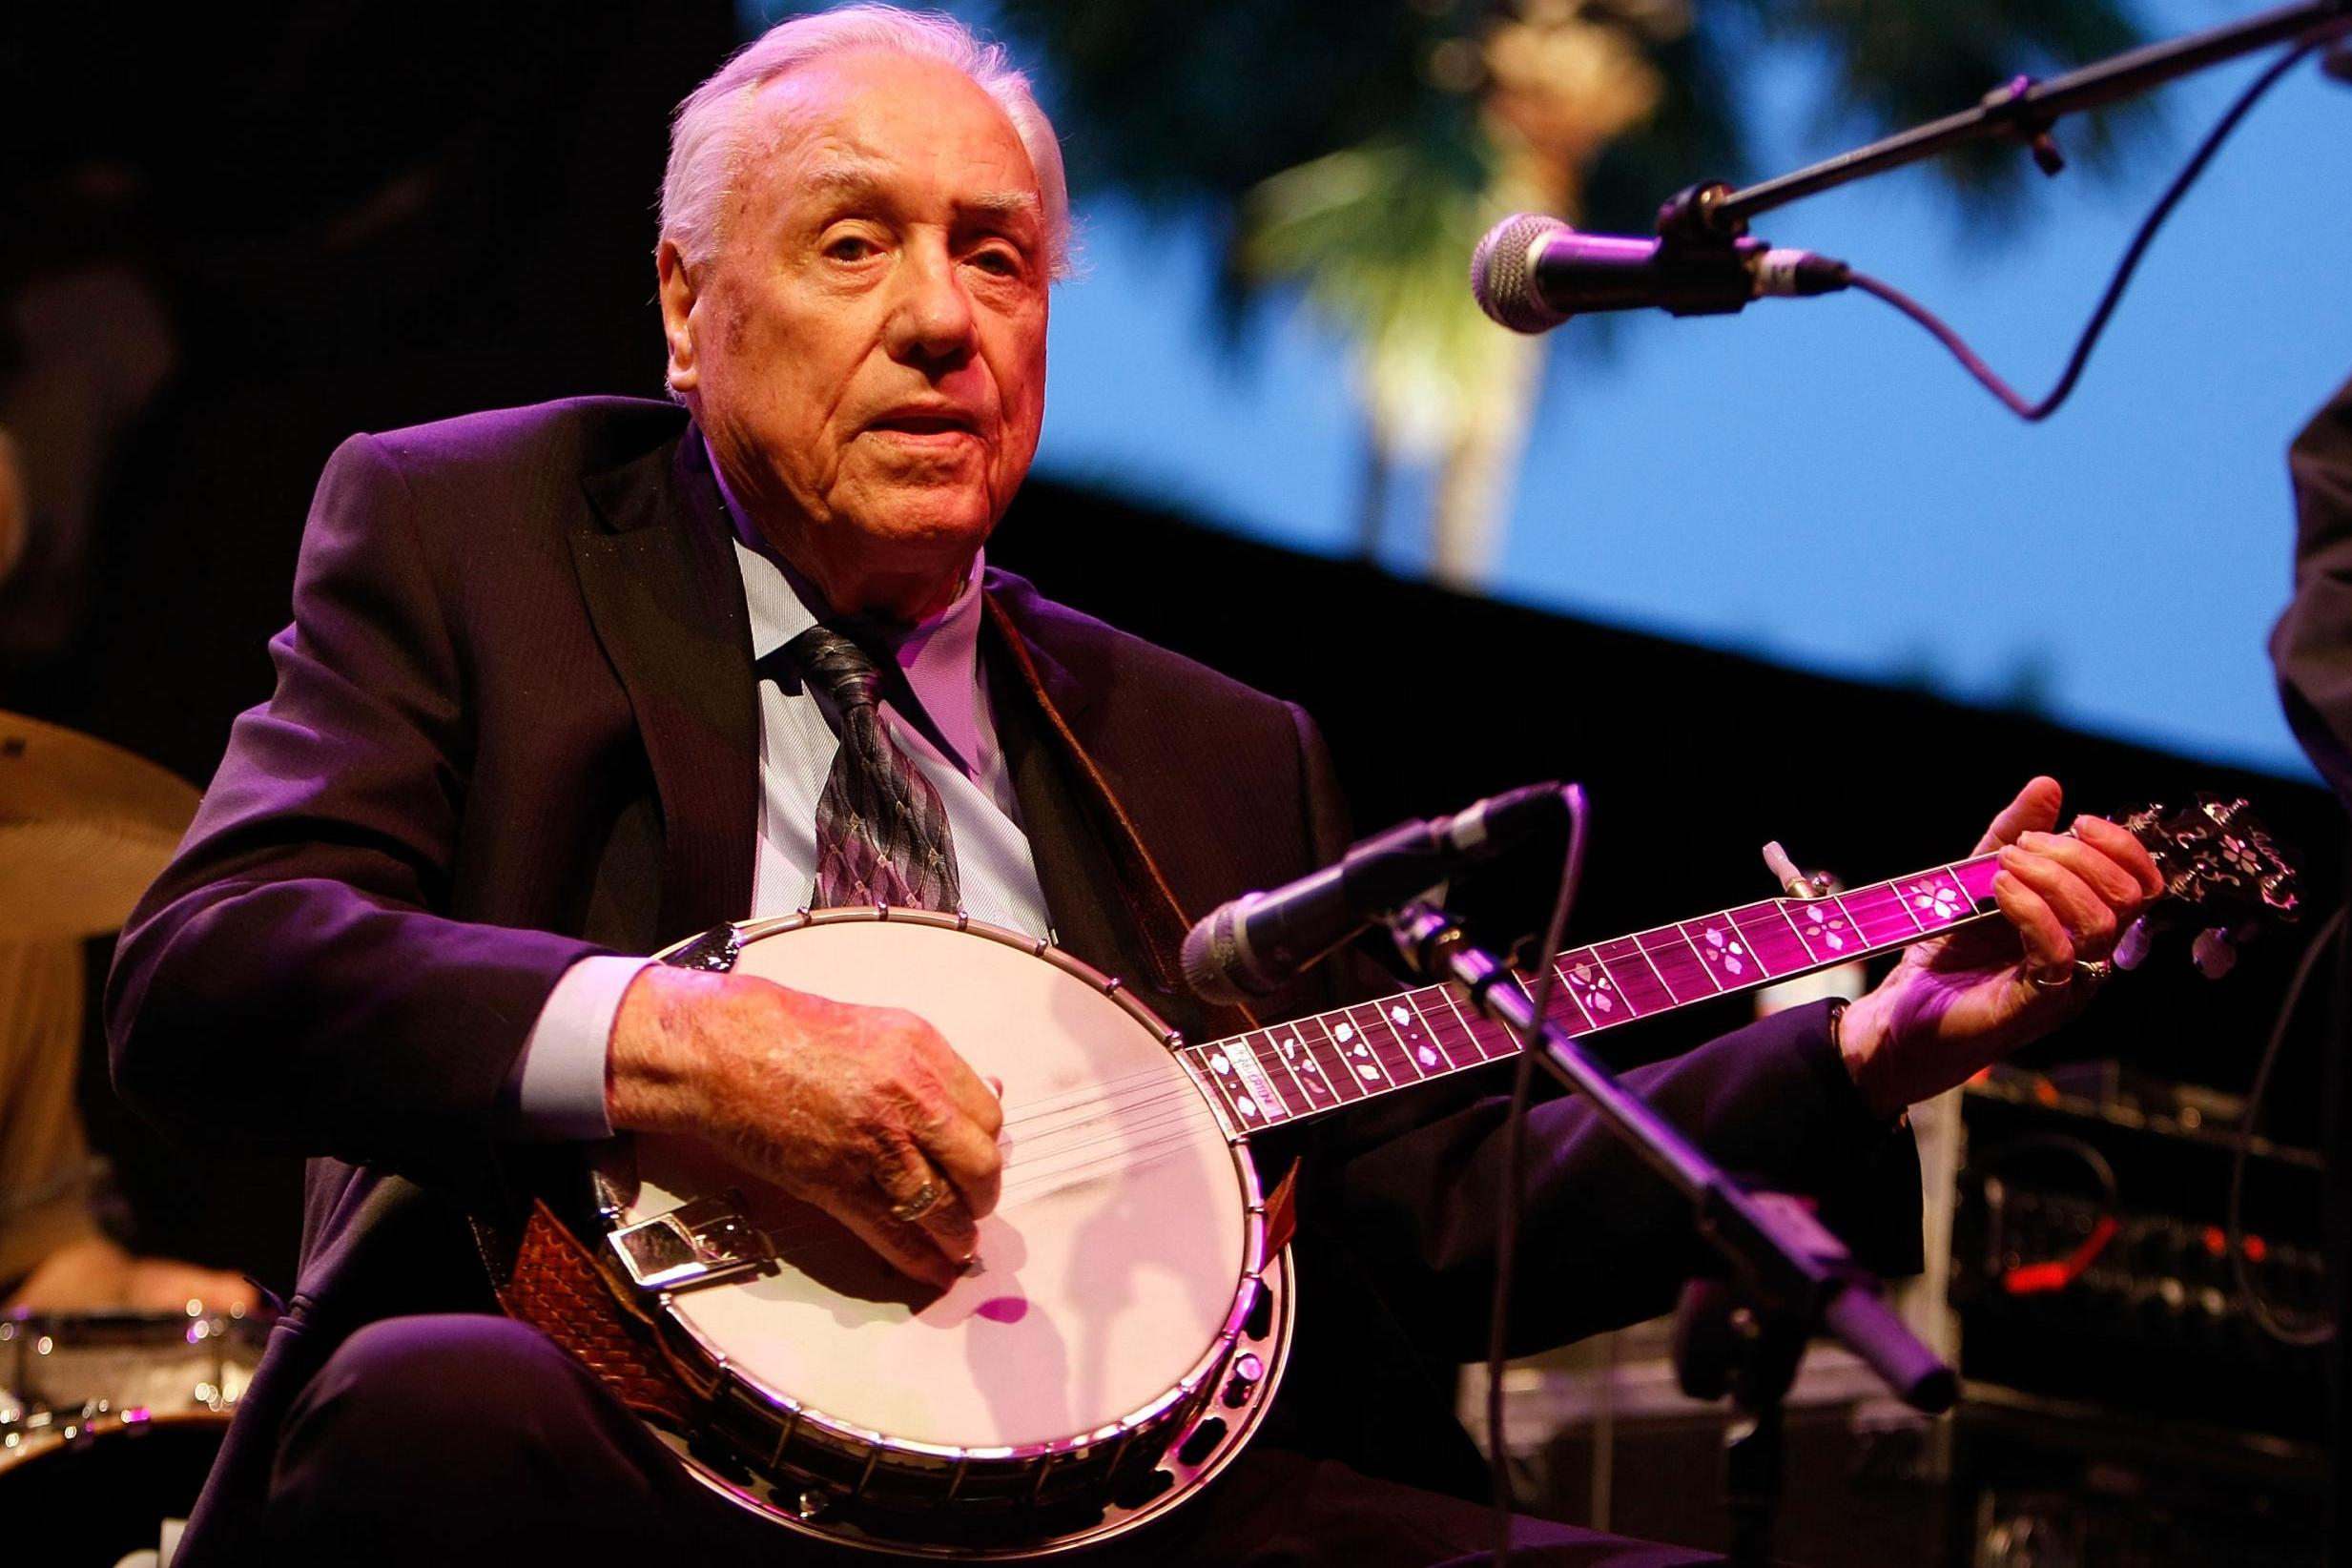 Earl Scruggs: Four things to know about the celebrated bluegrass banjo player